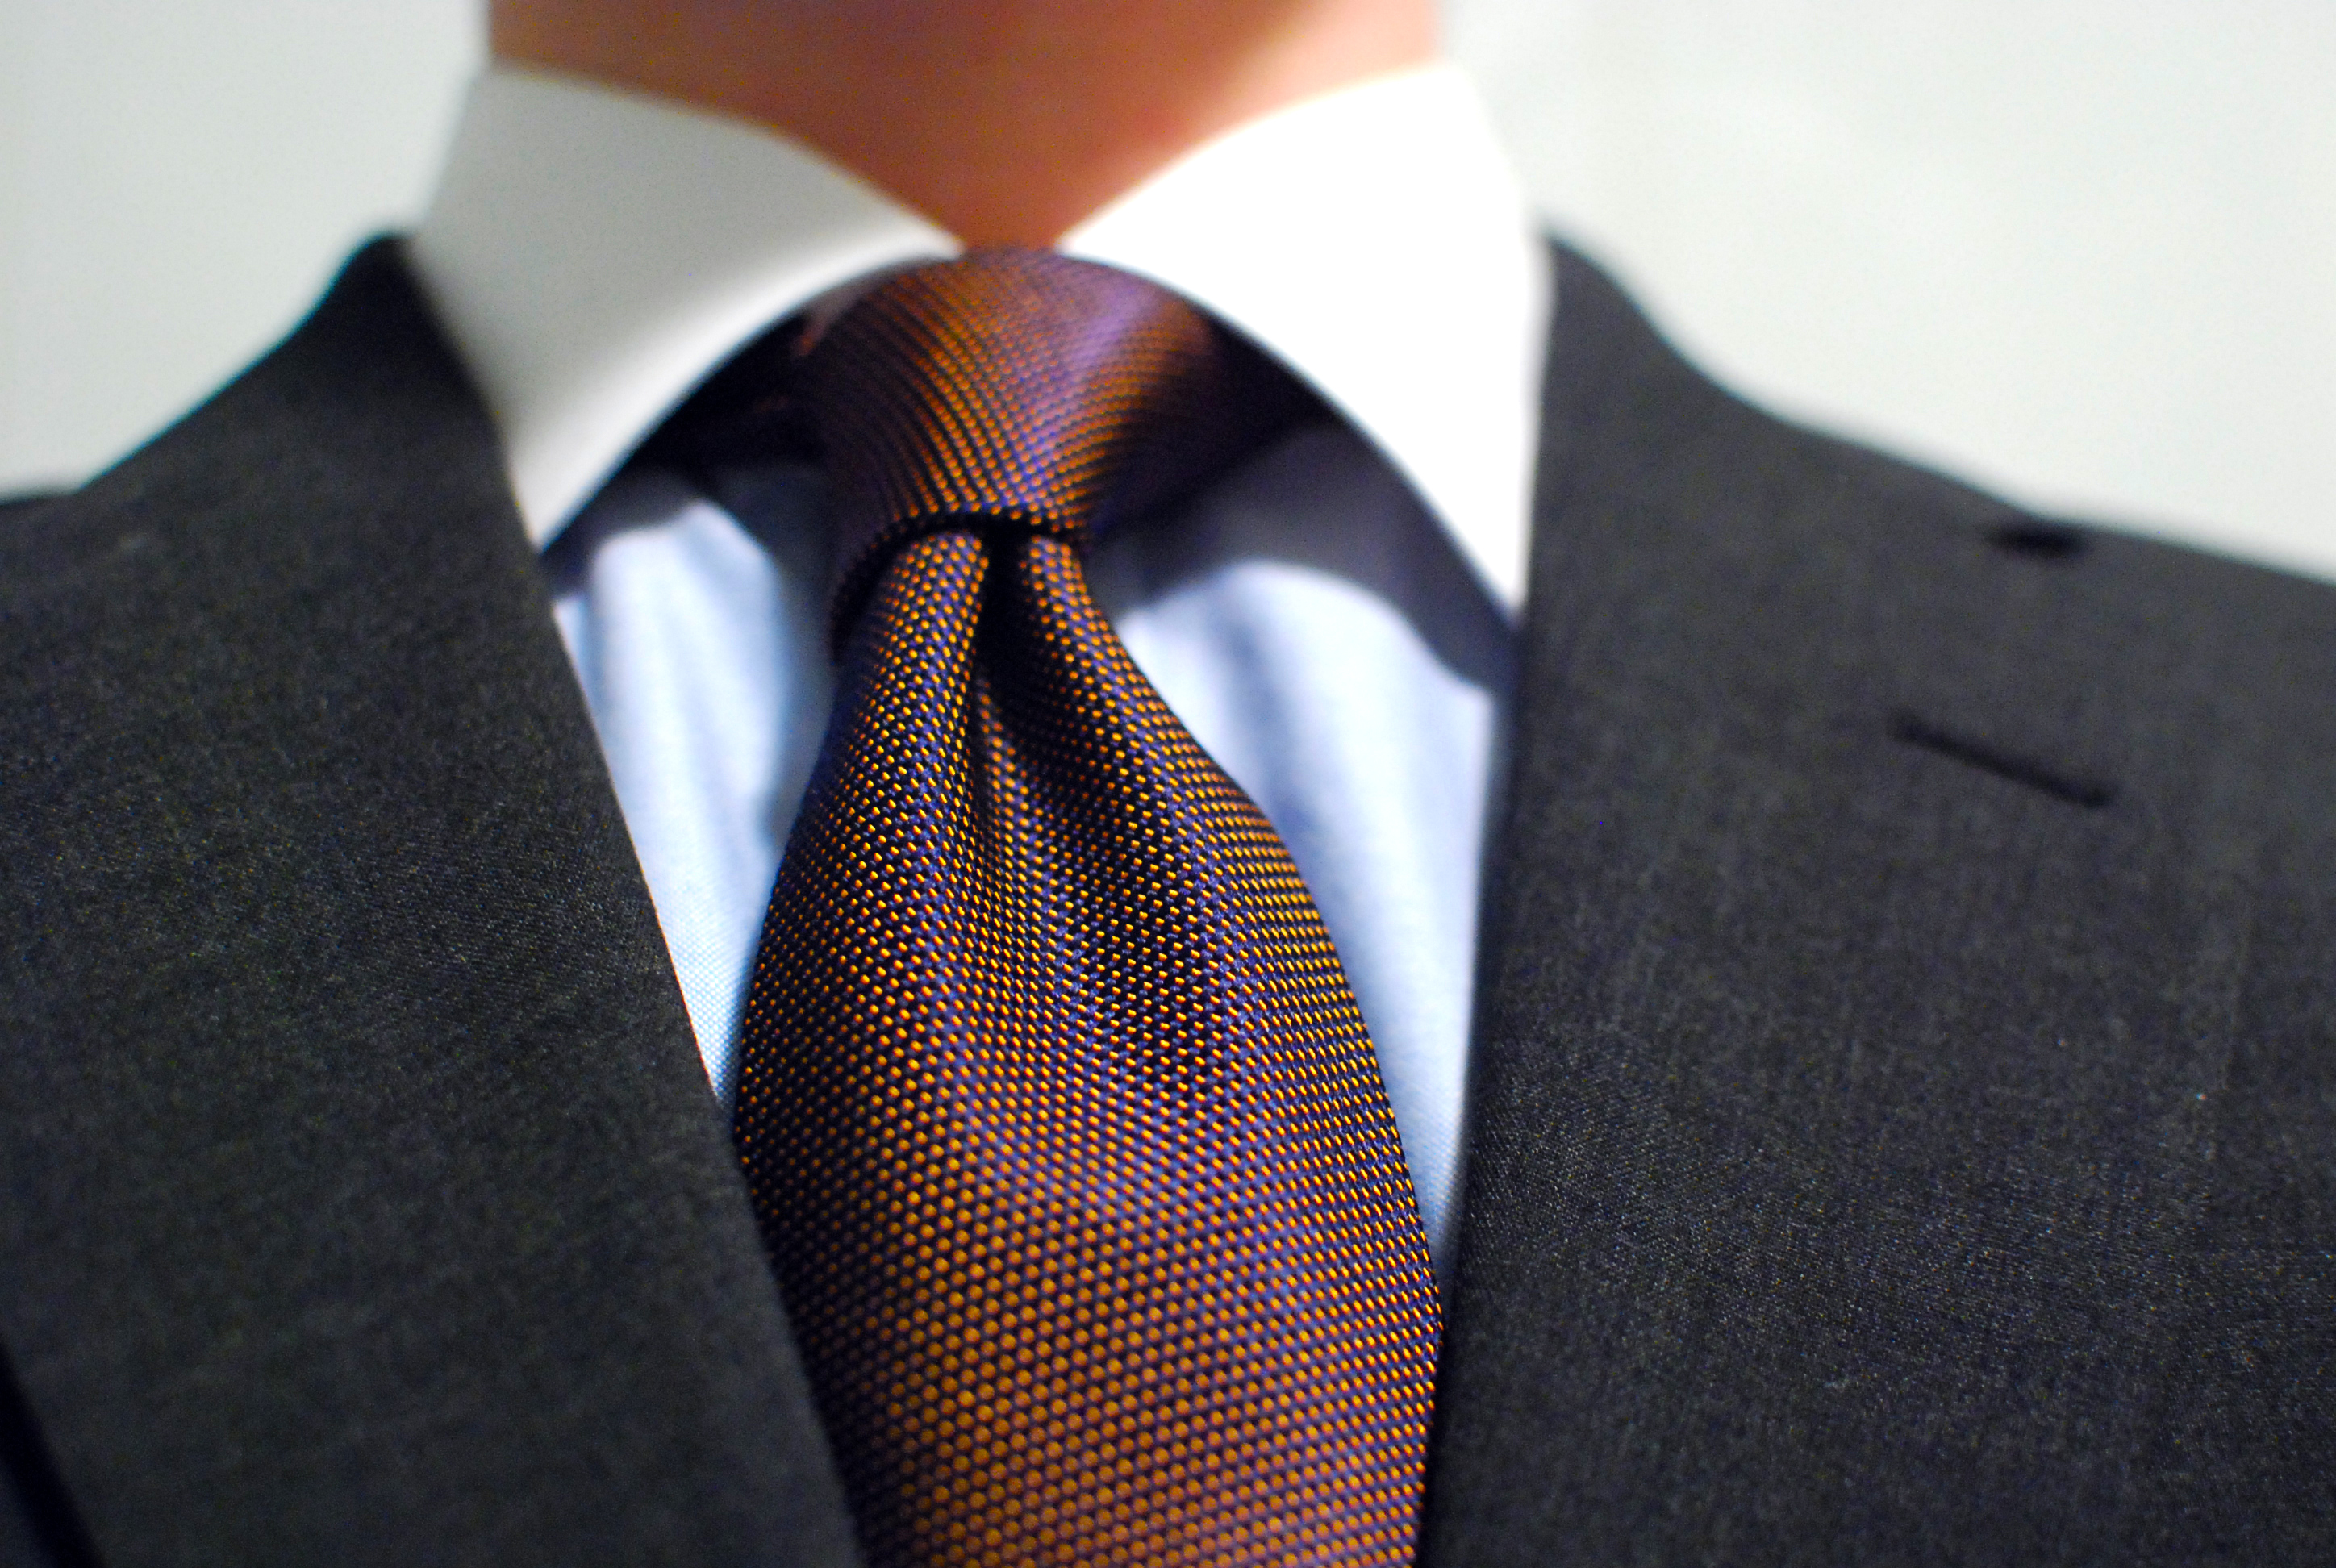 Men's ties guide: How to tie a tie and everything you need to know about neckties.